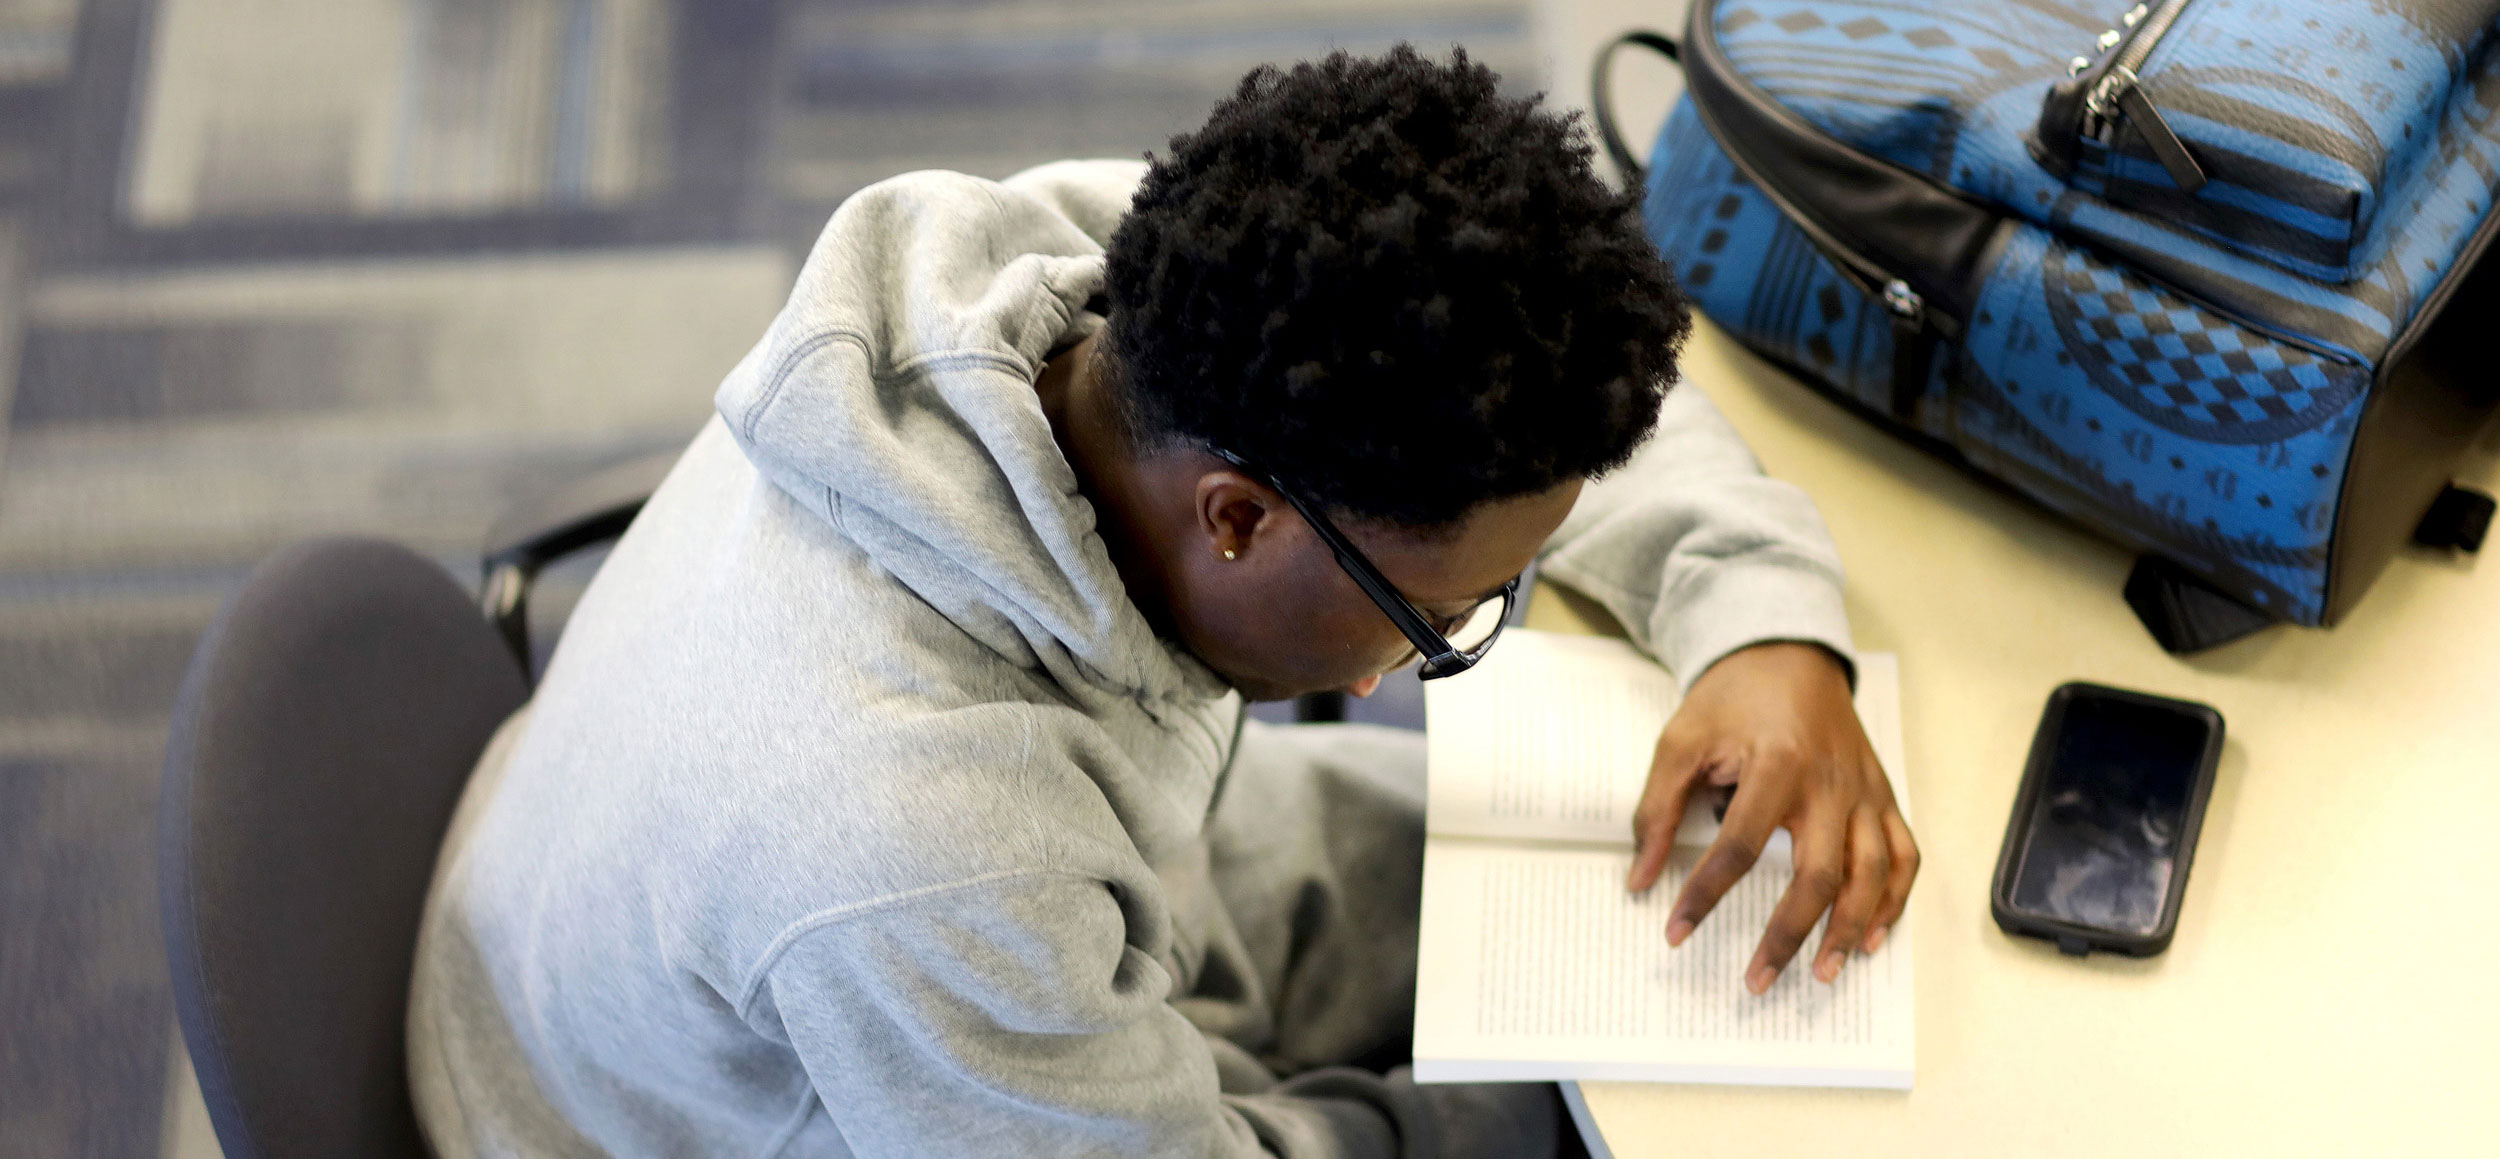 Student Studying at desk